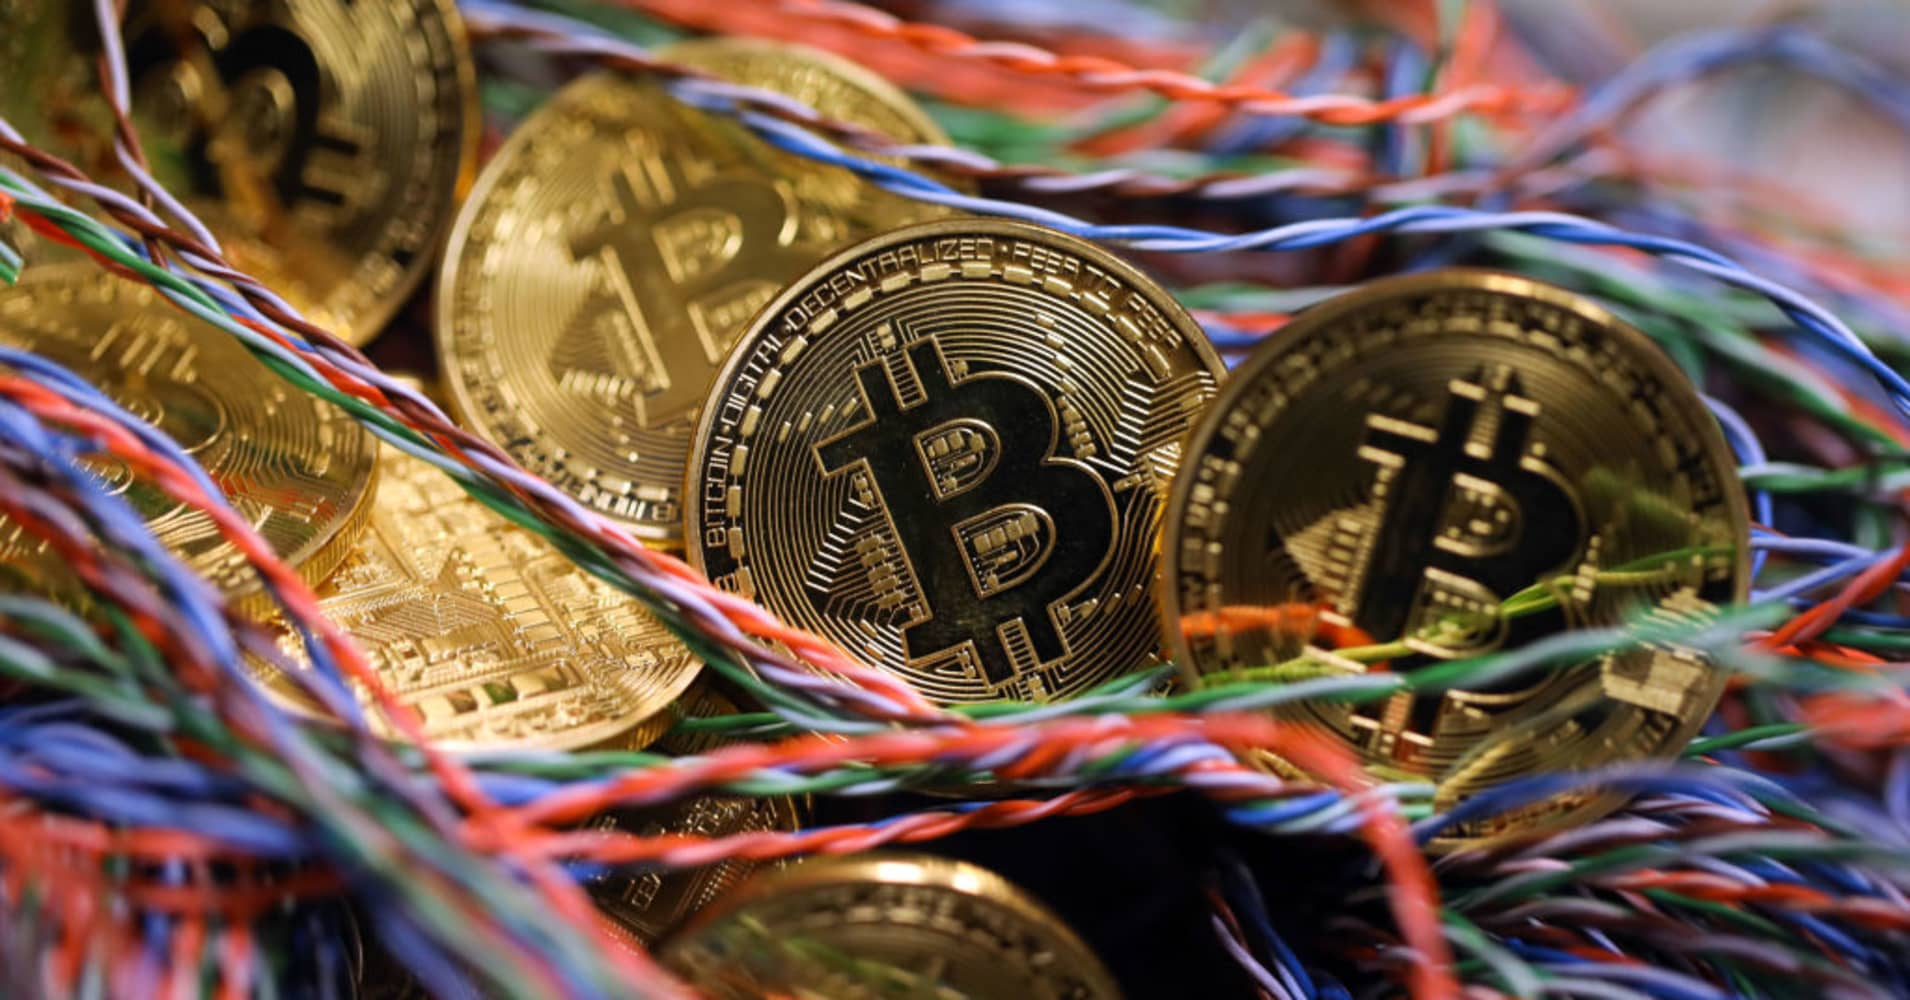 More than $60 million worth of bitcoin potentially stolen after hack on cryptocurrency site